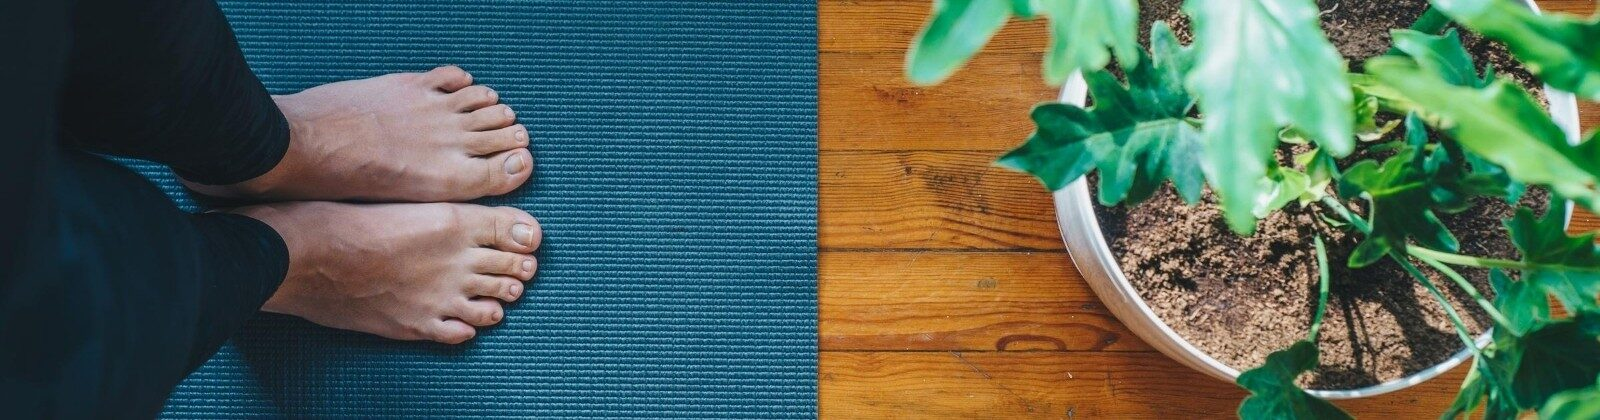 Best Travel Yoga Mat In 2020 How To Choose